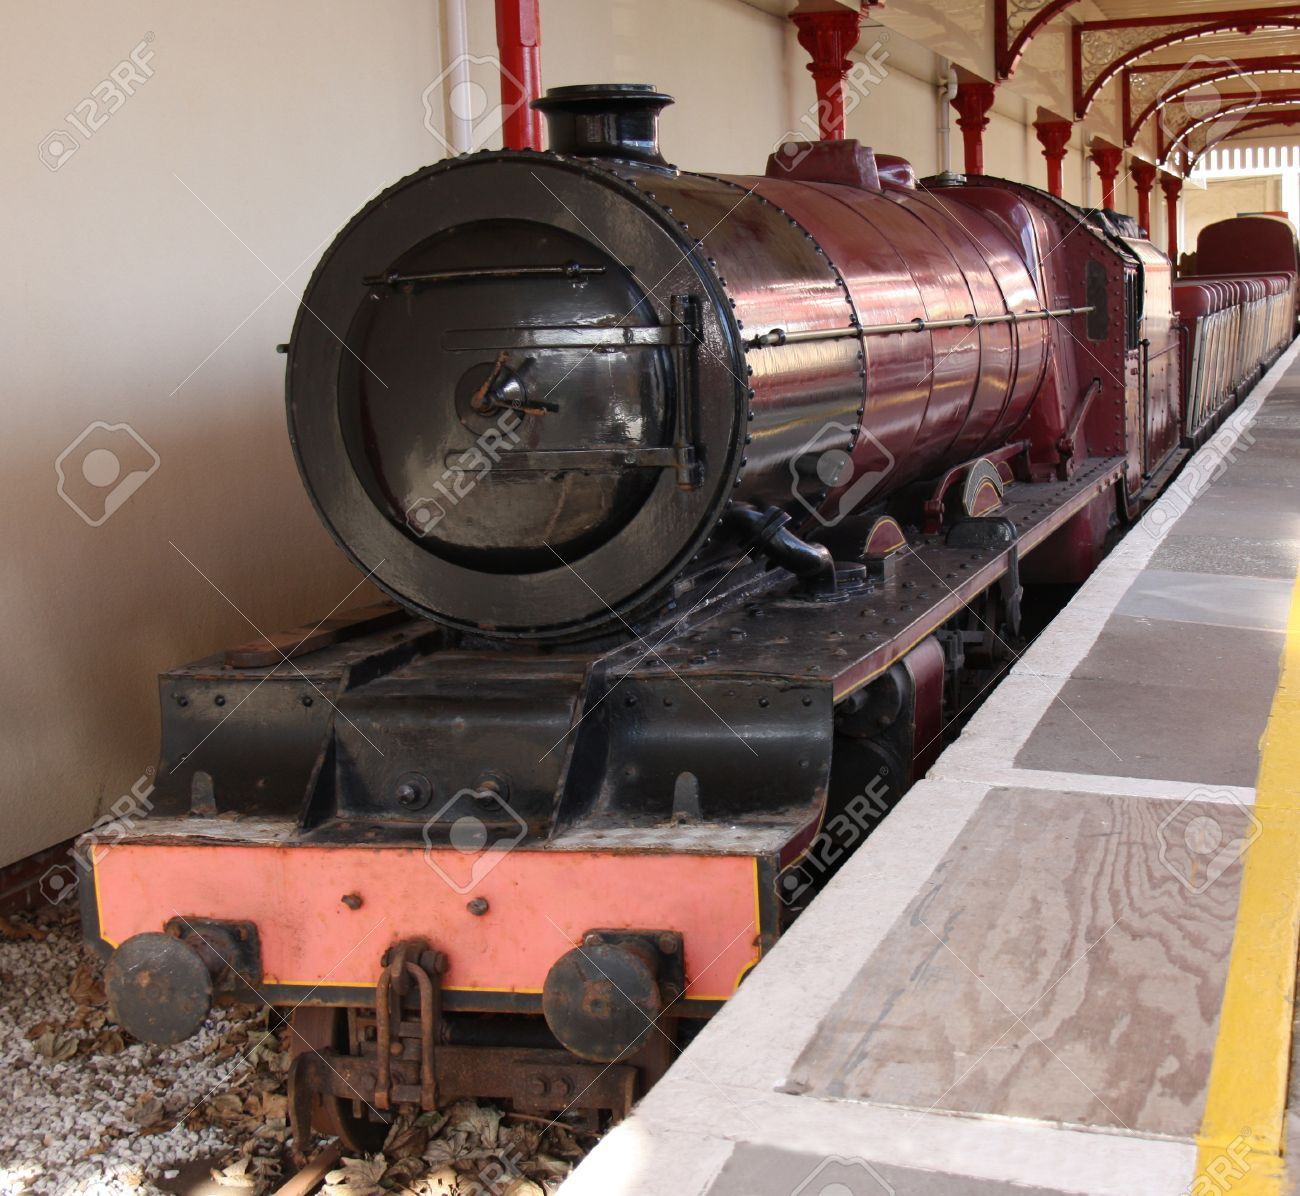 A Narrow Gauge Steam Train Engine and Carriages. Stock Photo - 16704755